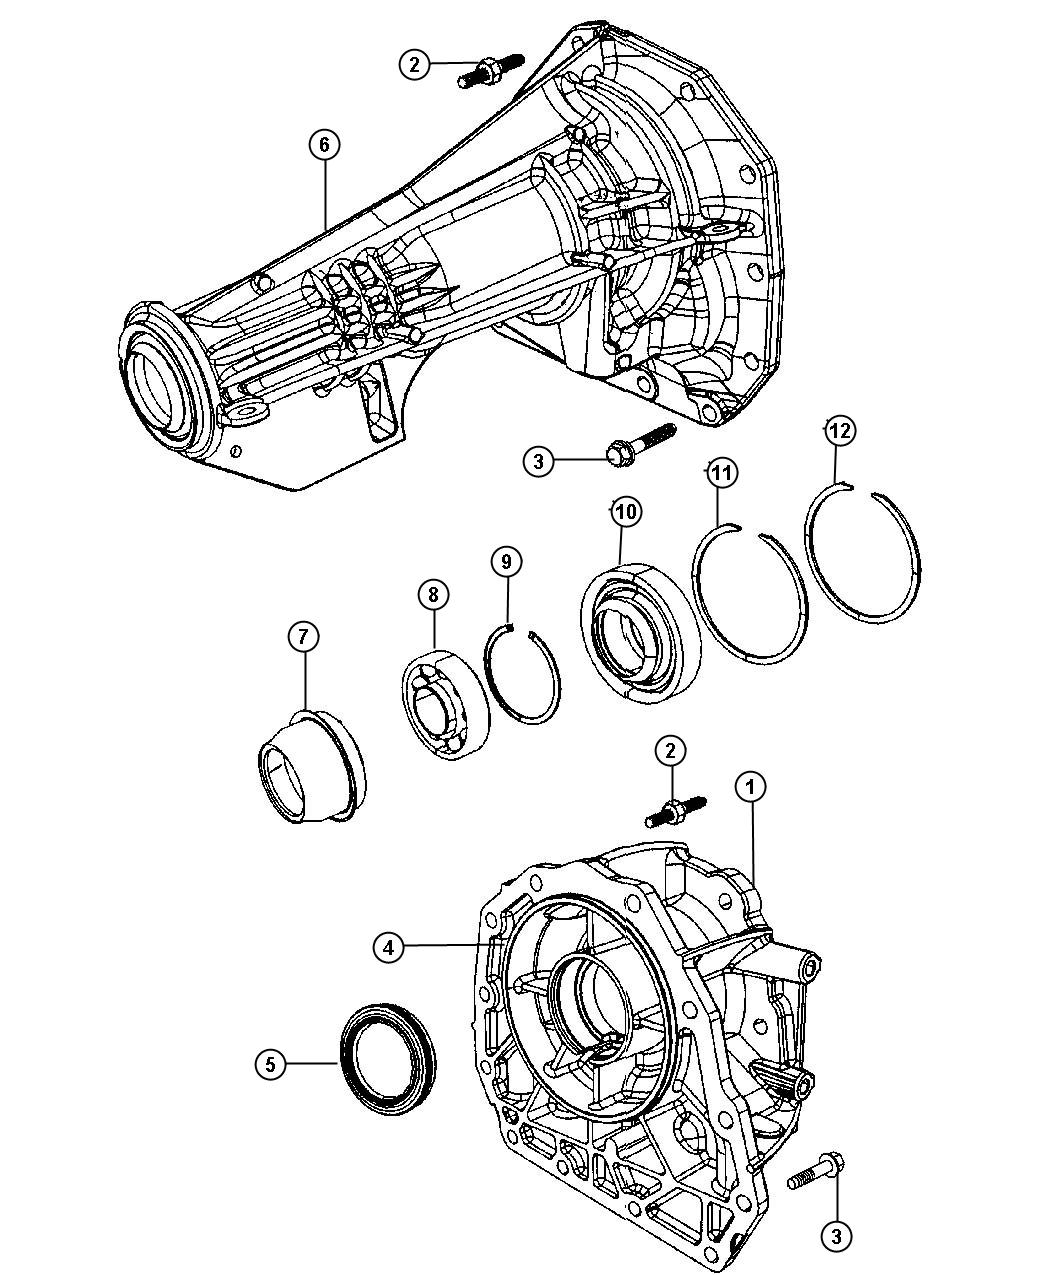 Dodge Neon Transmission Diagram